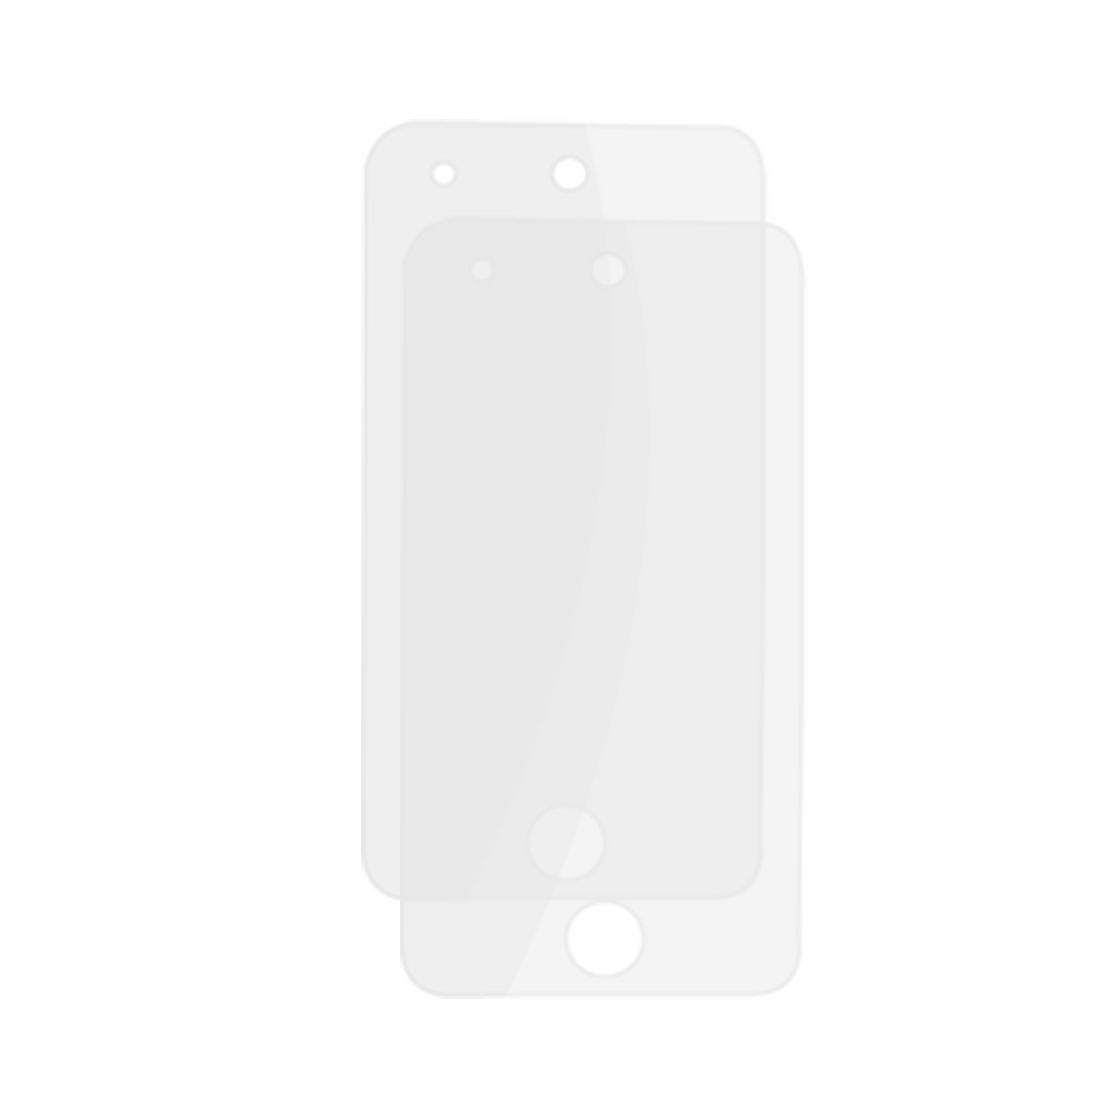 2 Pcs Clear Plastic Screen Protector for iPod Touch 4